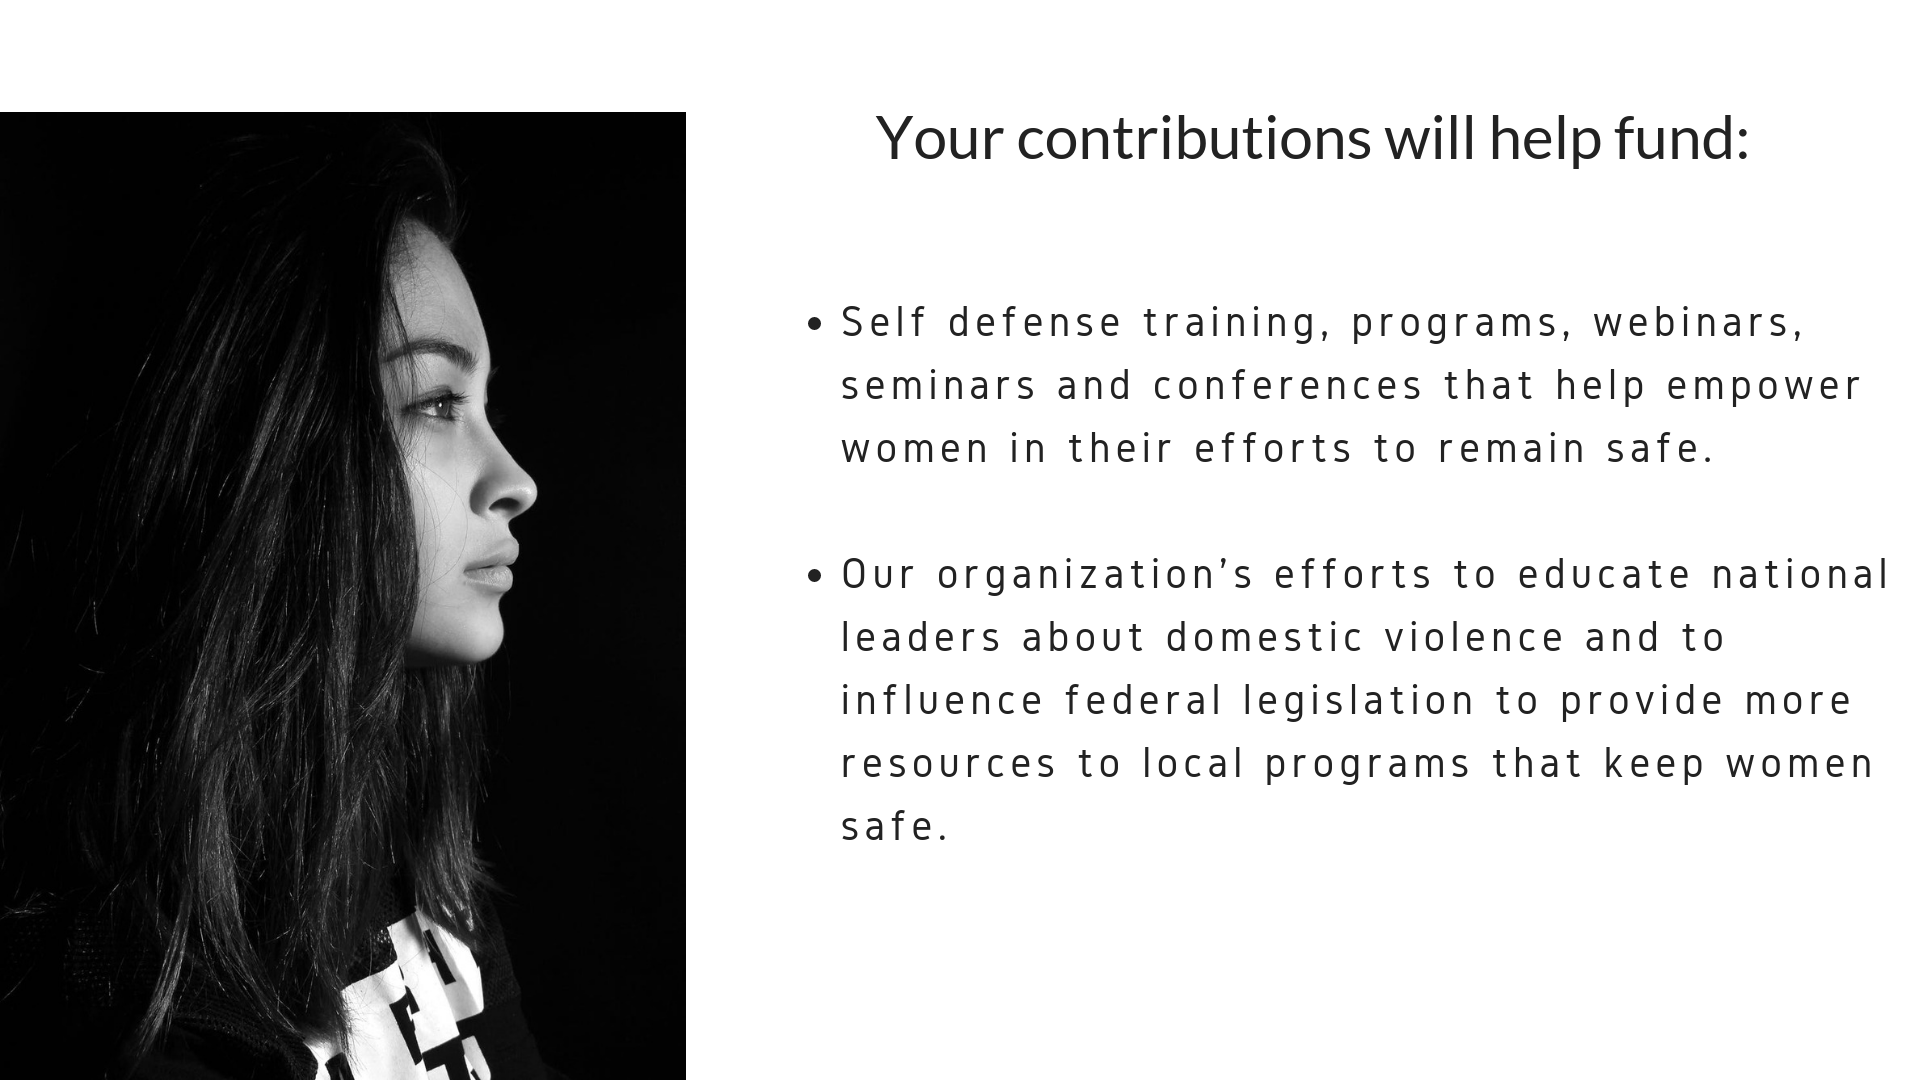 Hard Candy Women's Self Defense. Support our organization's efforts to educate national leaders about domestic violence and to influence federal legislation to provide more resources to local programs that keep women safe.